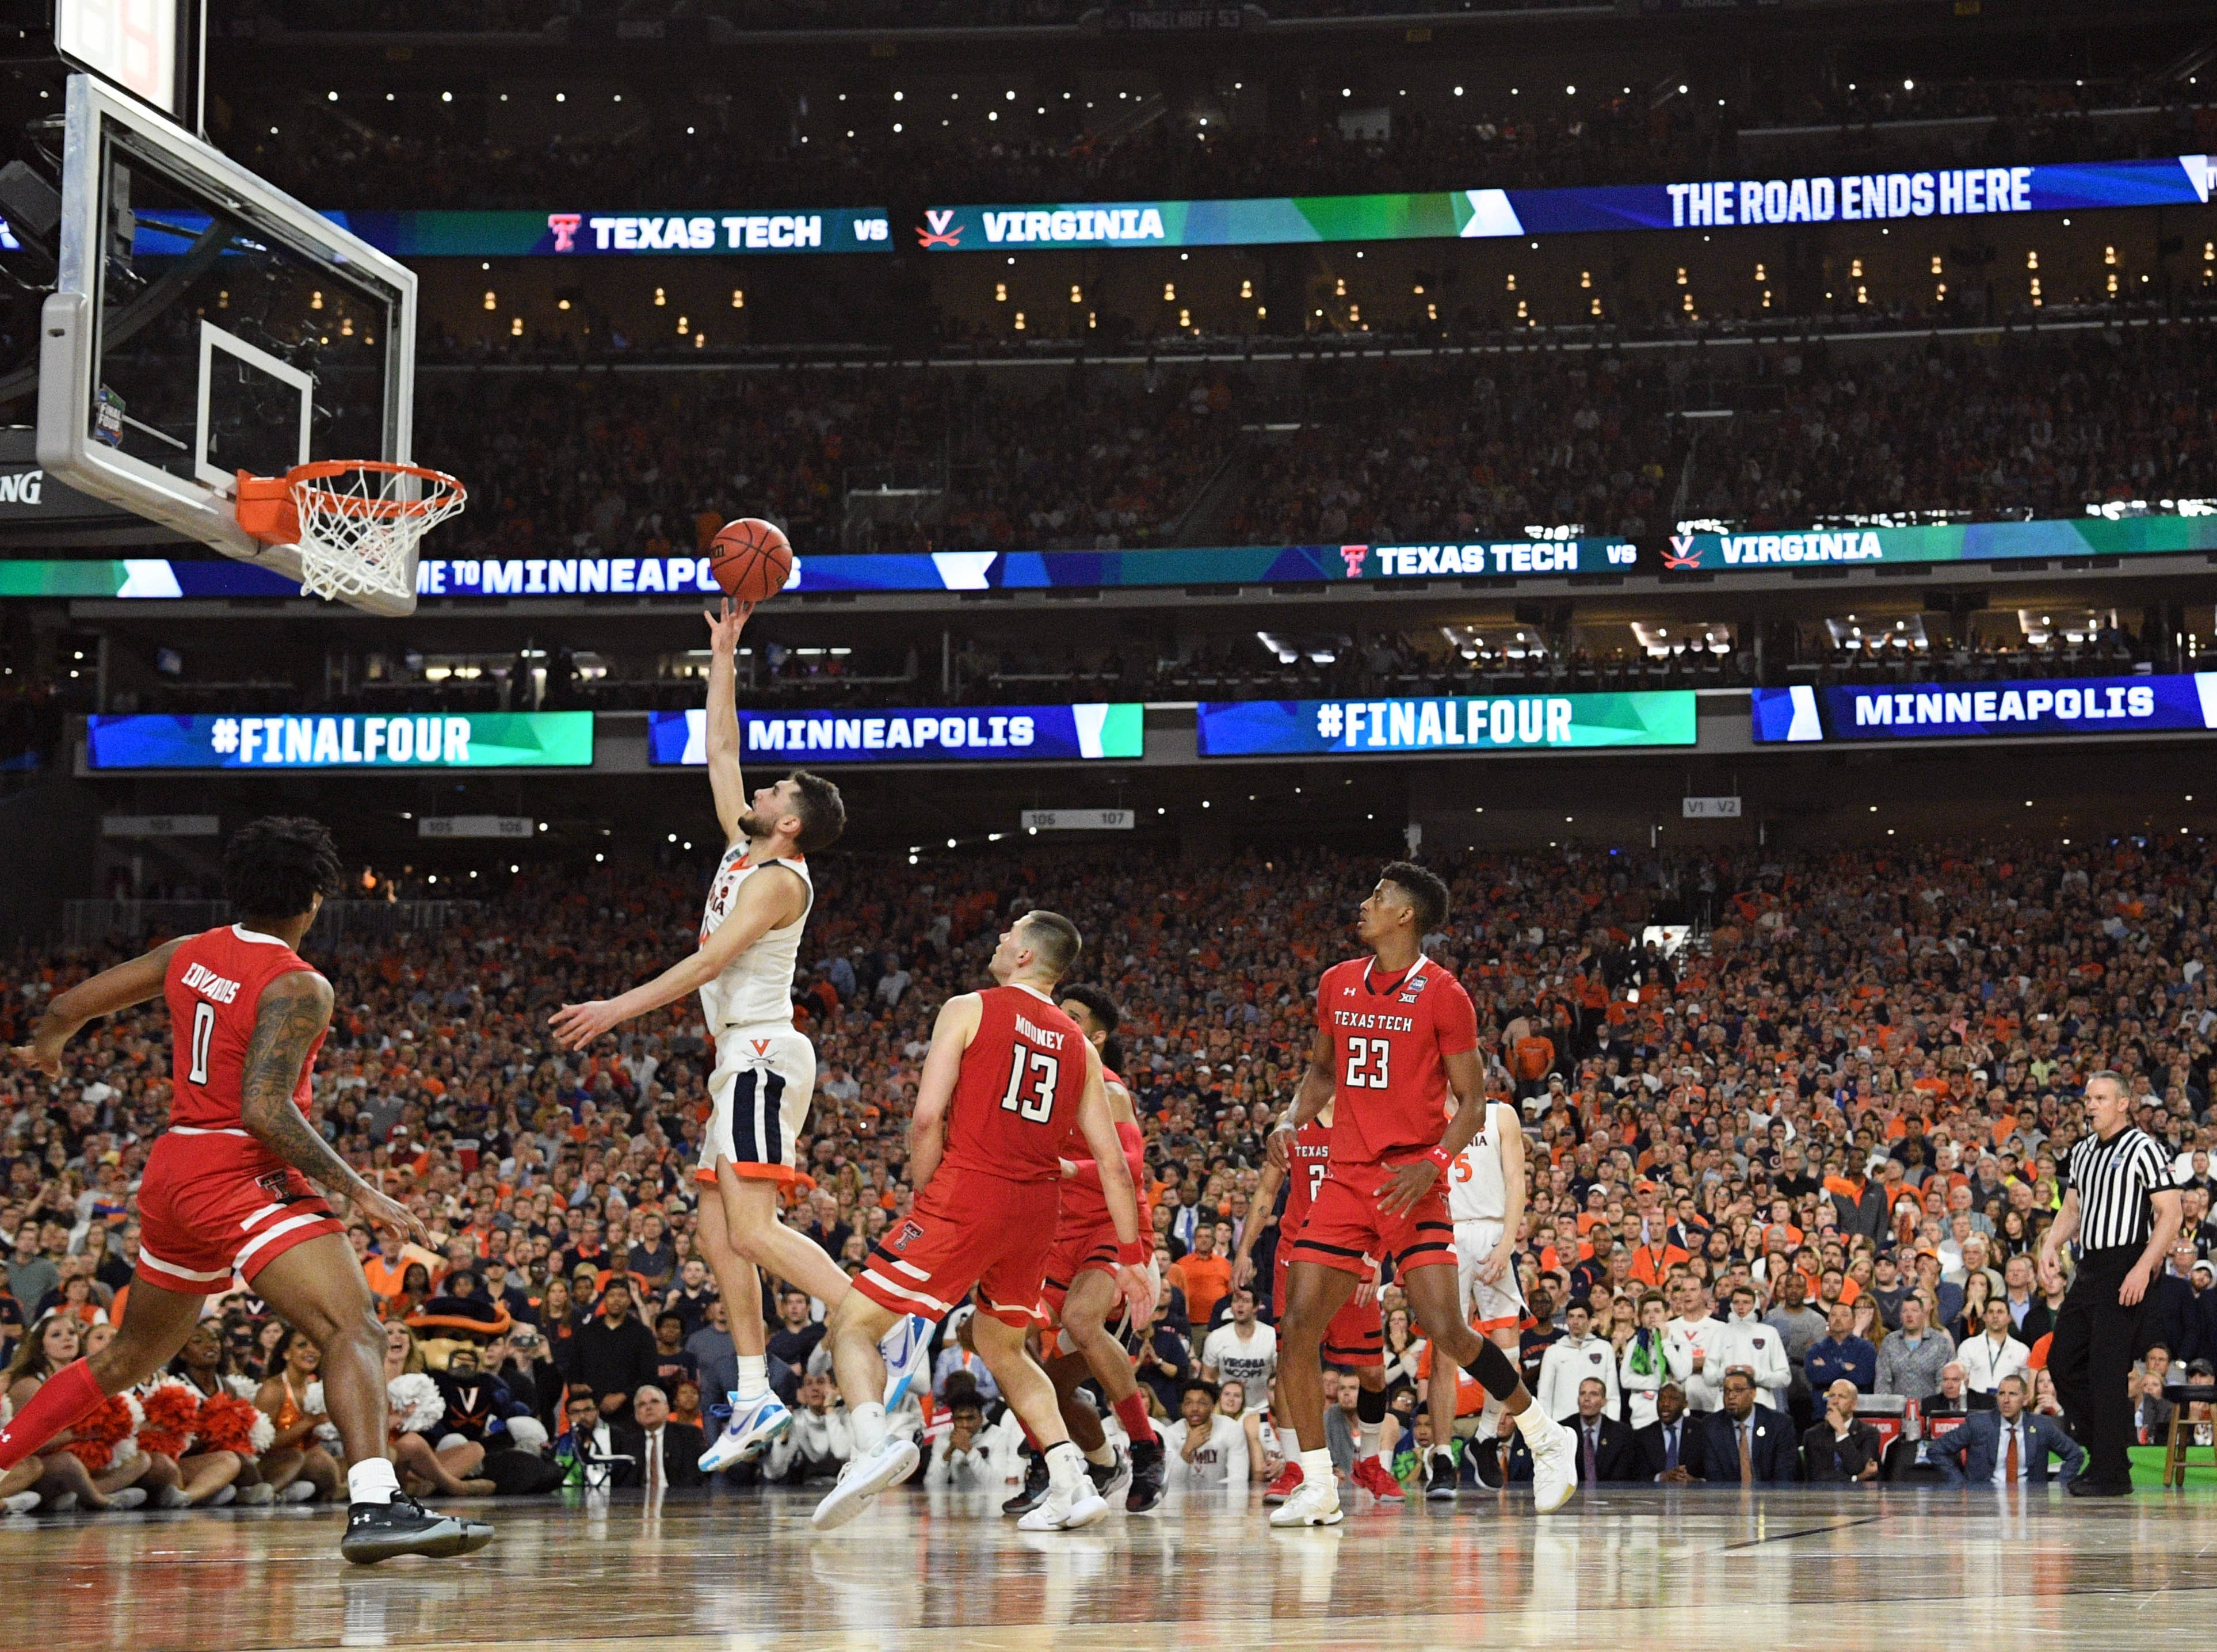 Apr 8, 2019; Minneapolis, MN, USA; Virginia Cavaliers guard Ty Jerome (11) shoots against the Texas Tech Red Raiders in overtime in the championship game of the 2019 men's Final Four at US Bank Stadium. Mandatory Credit: Robert Deutsch-USA TODAY Sports